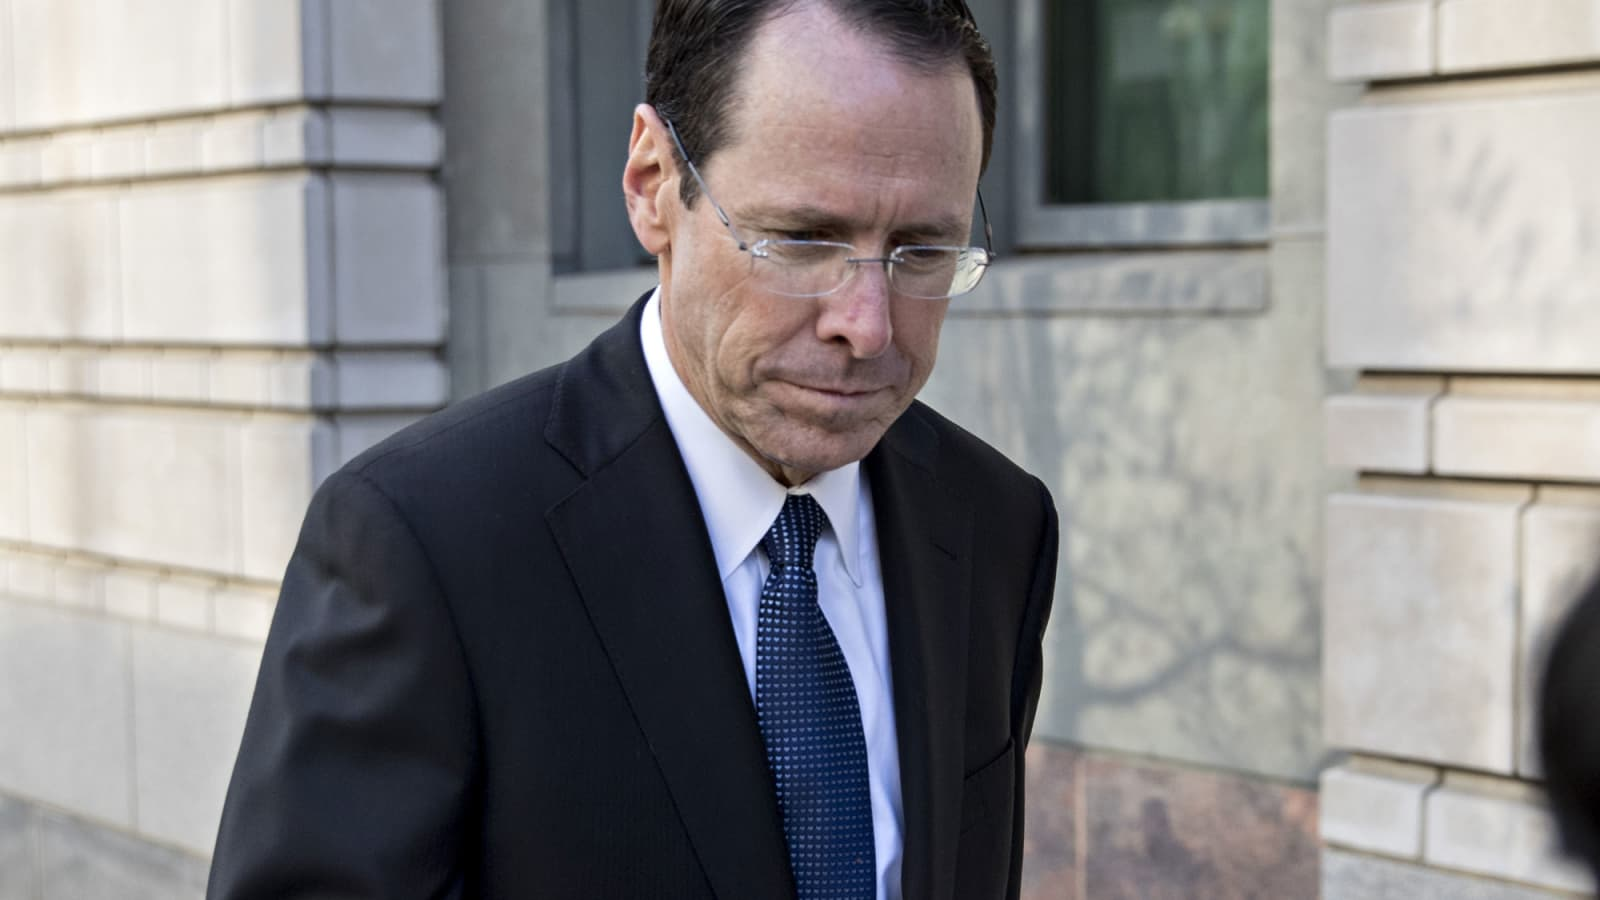 At T Ceo Randall Stephenson To Step Down Coo Stankey To Take Over